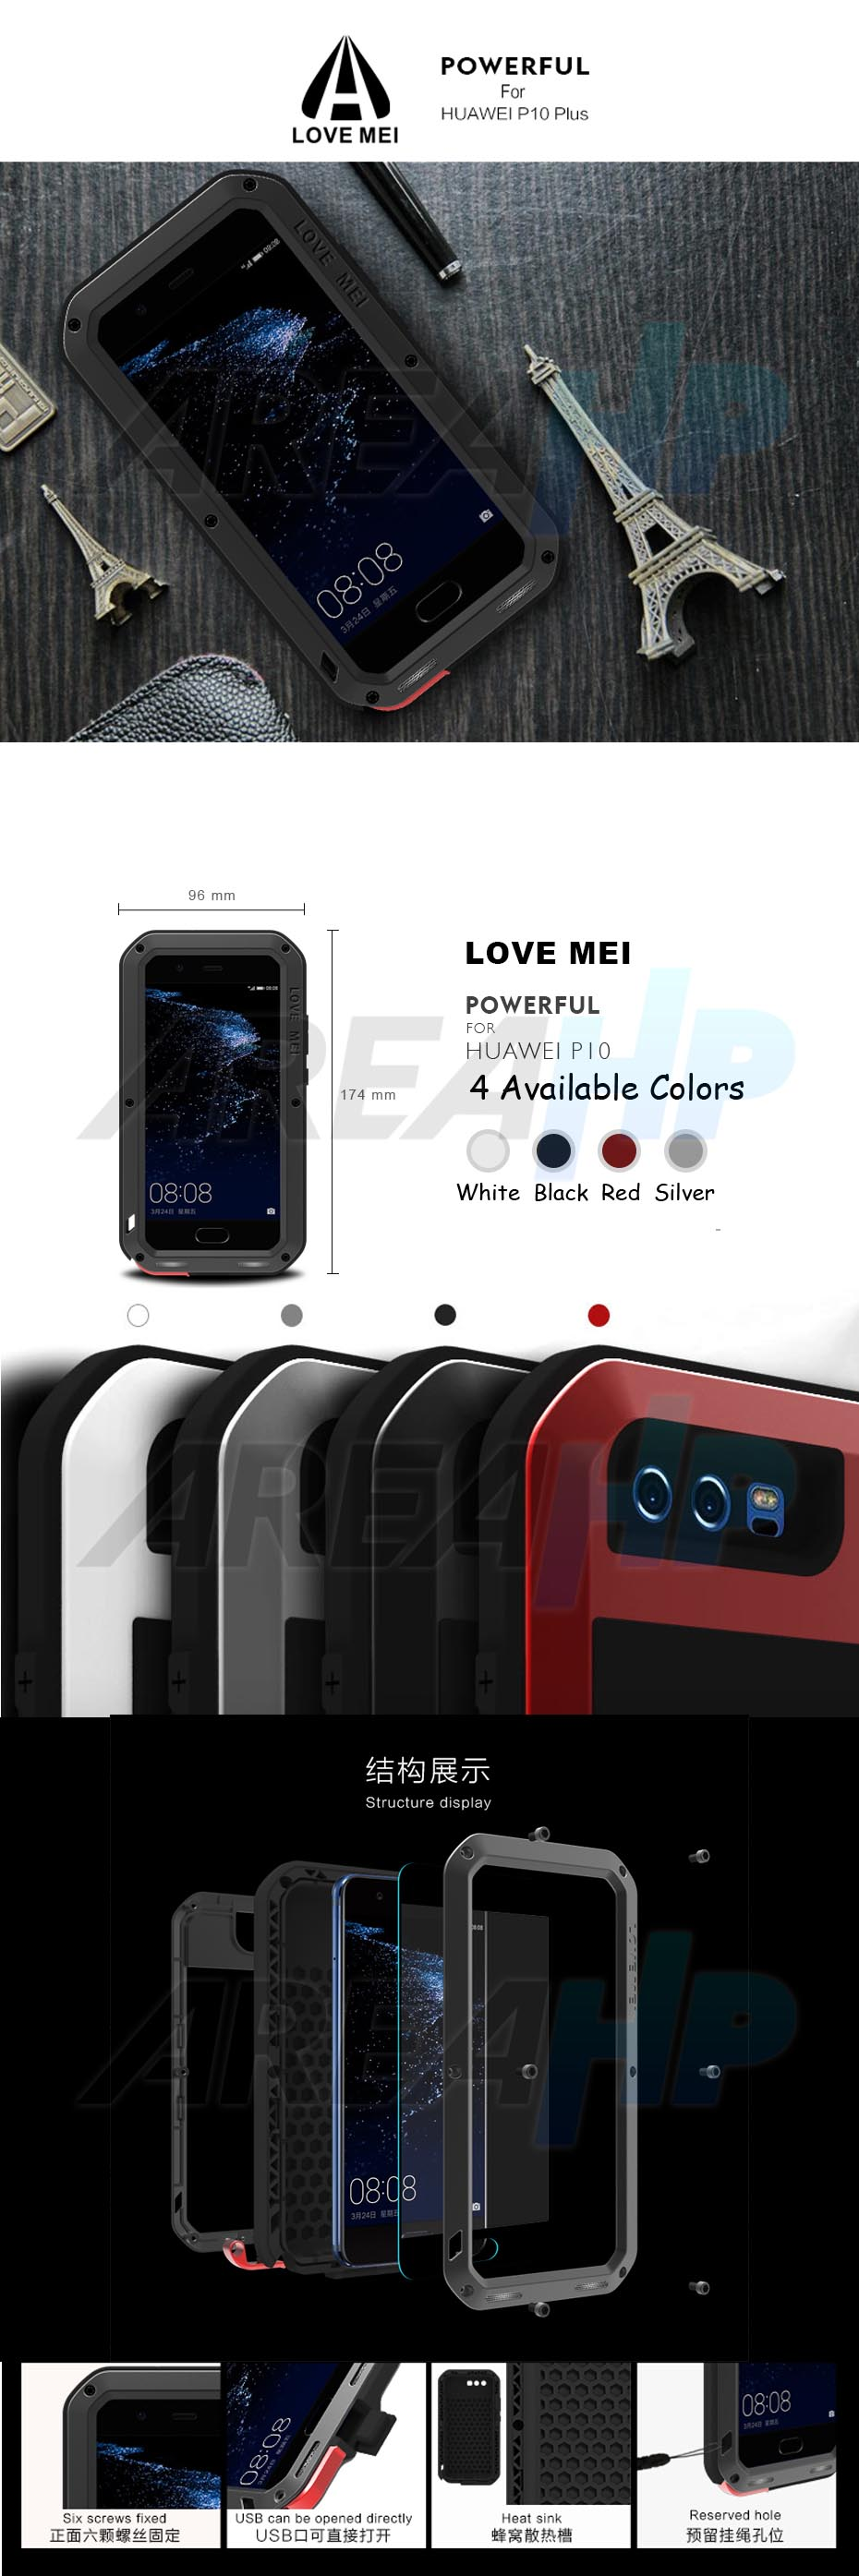 Love Mei Powerful Case for Huawei P10 Overview